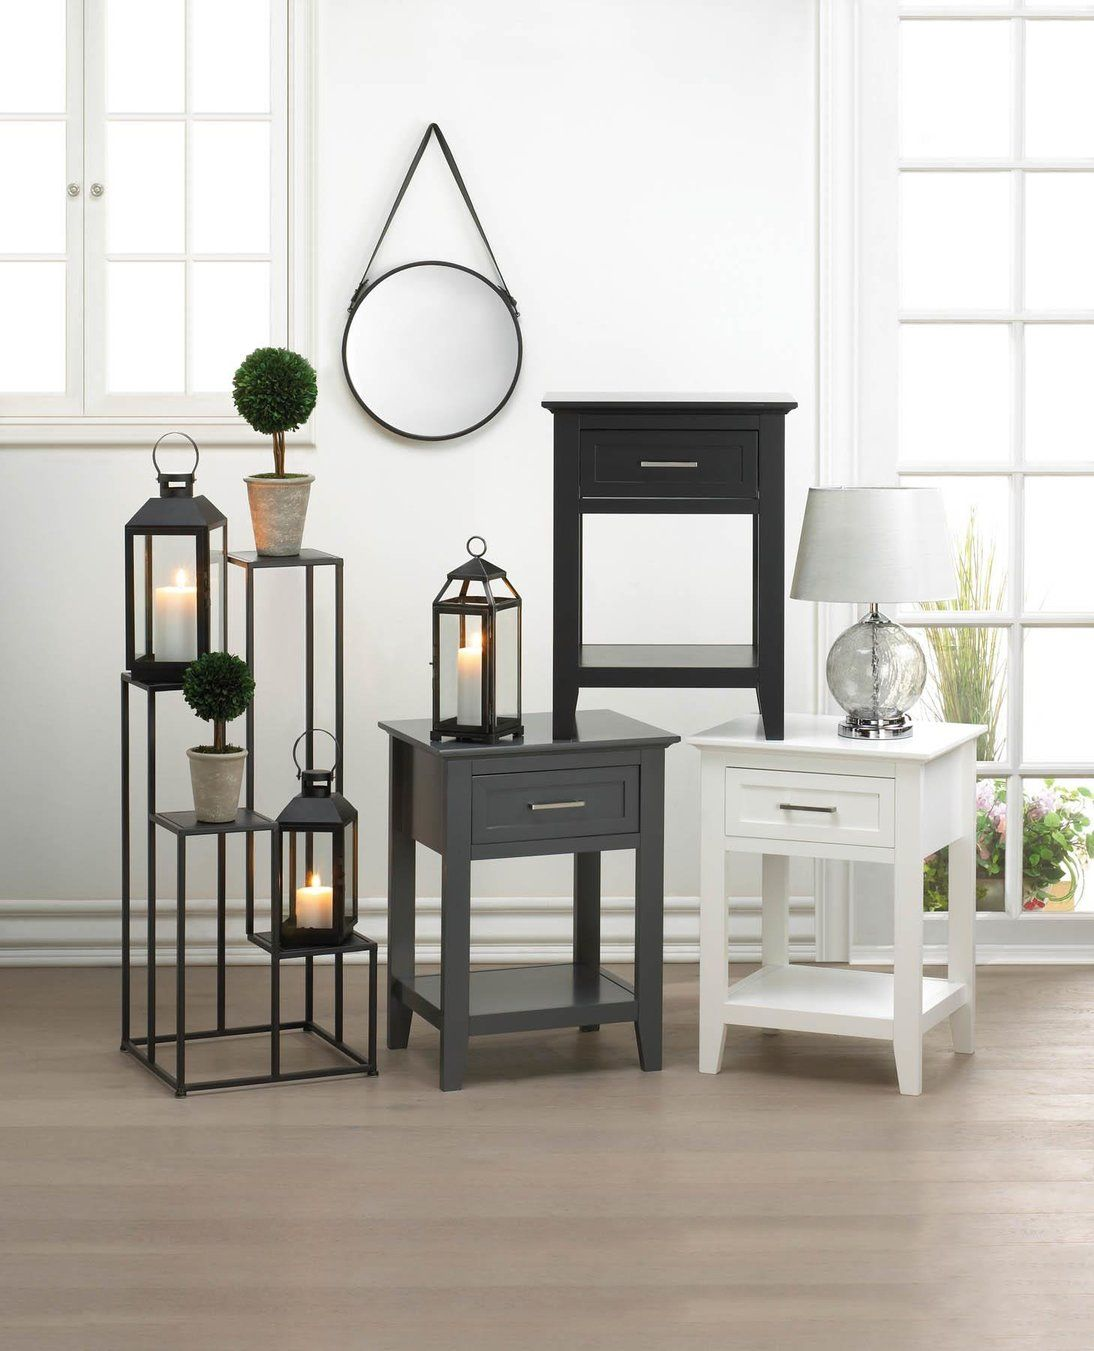 Modern Four Tier Plant Stand - Primrose Creations Shop